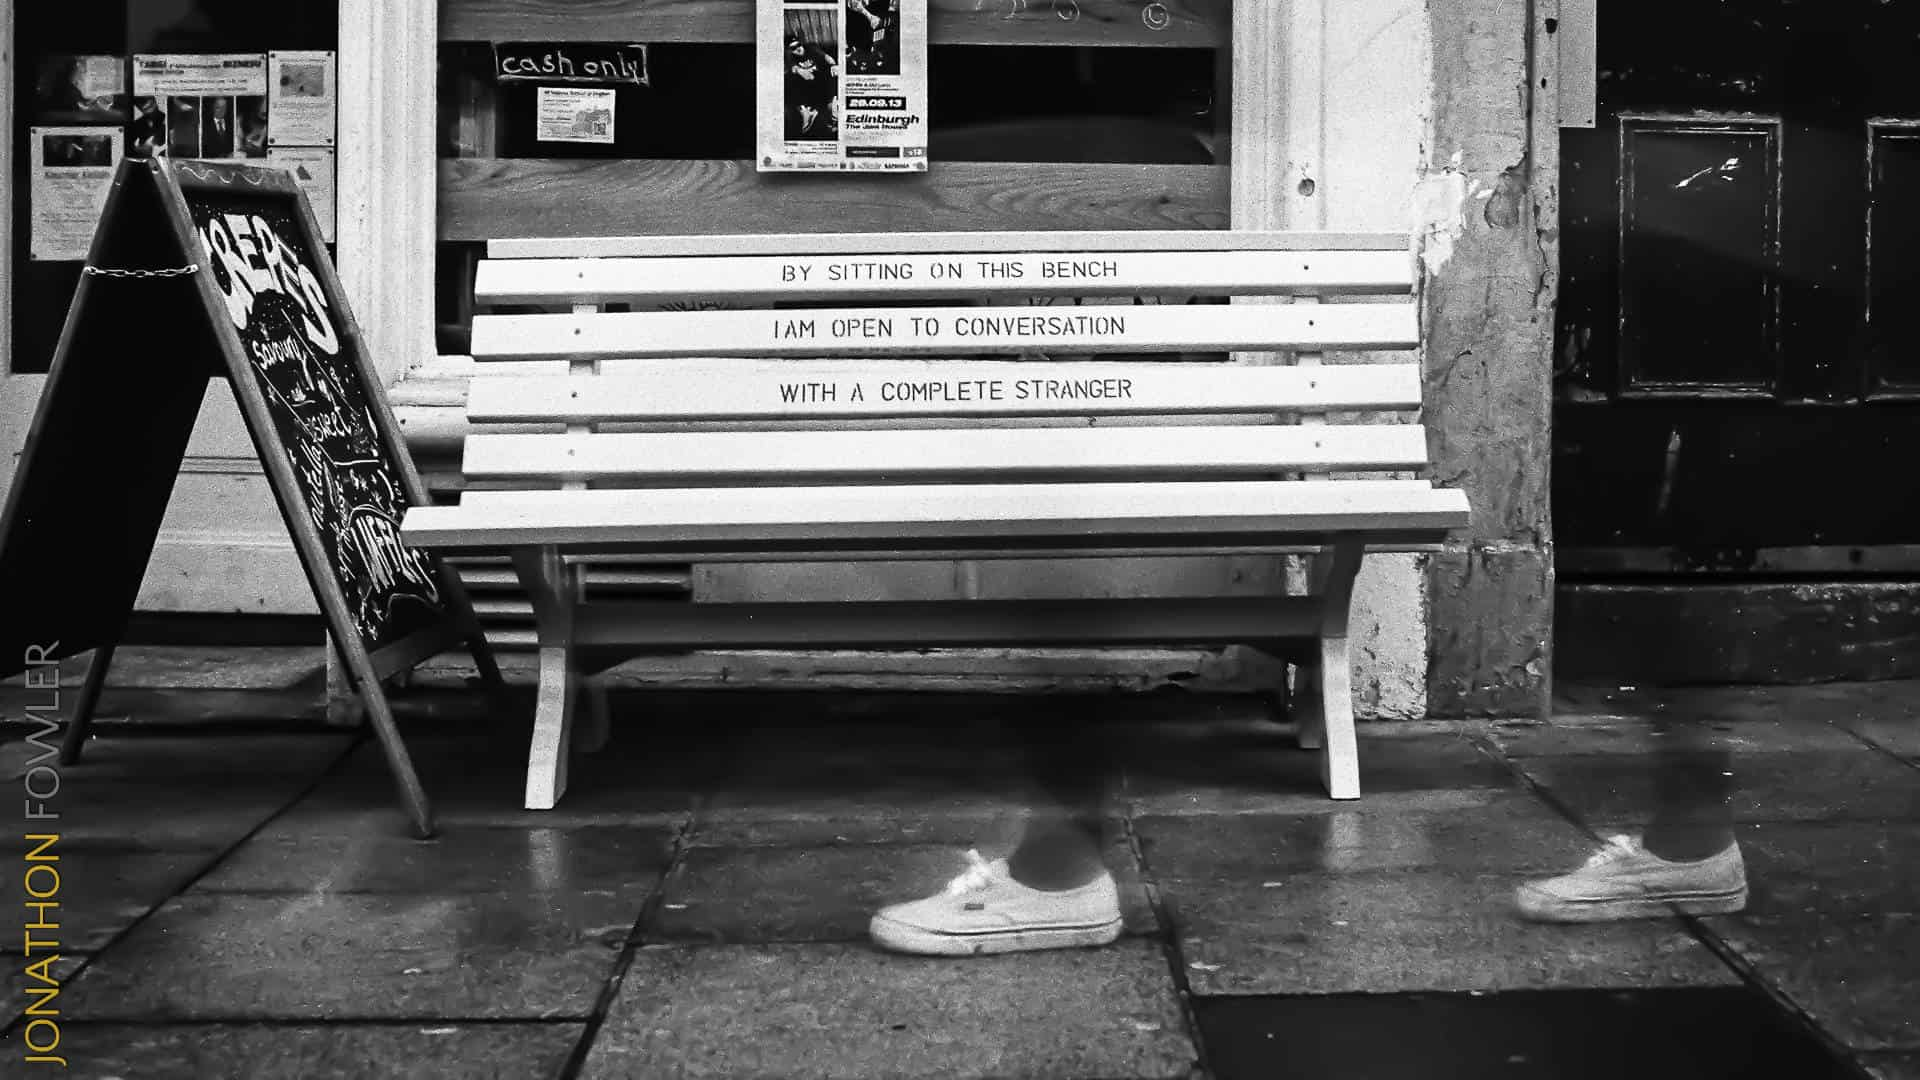 Leith Walk Ilford HP5 film black and white photo street photography - How To Choose A Photographer